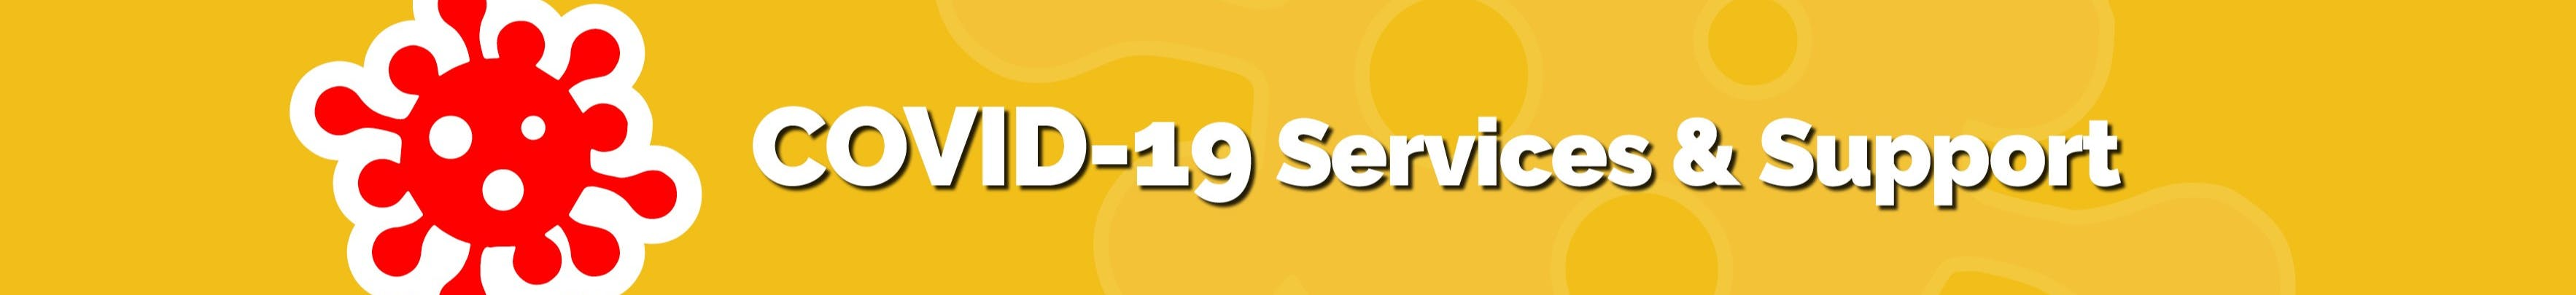 COVID-19 Services & Support